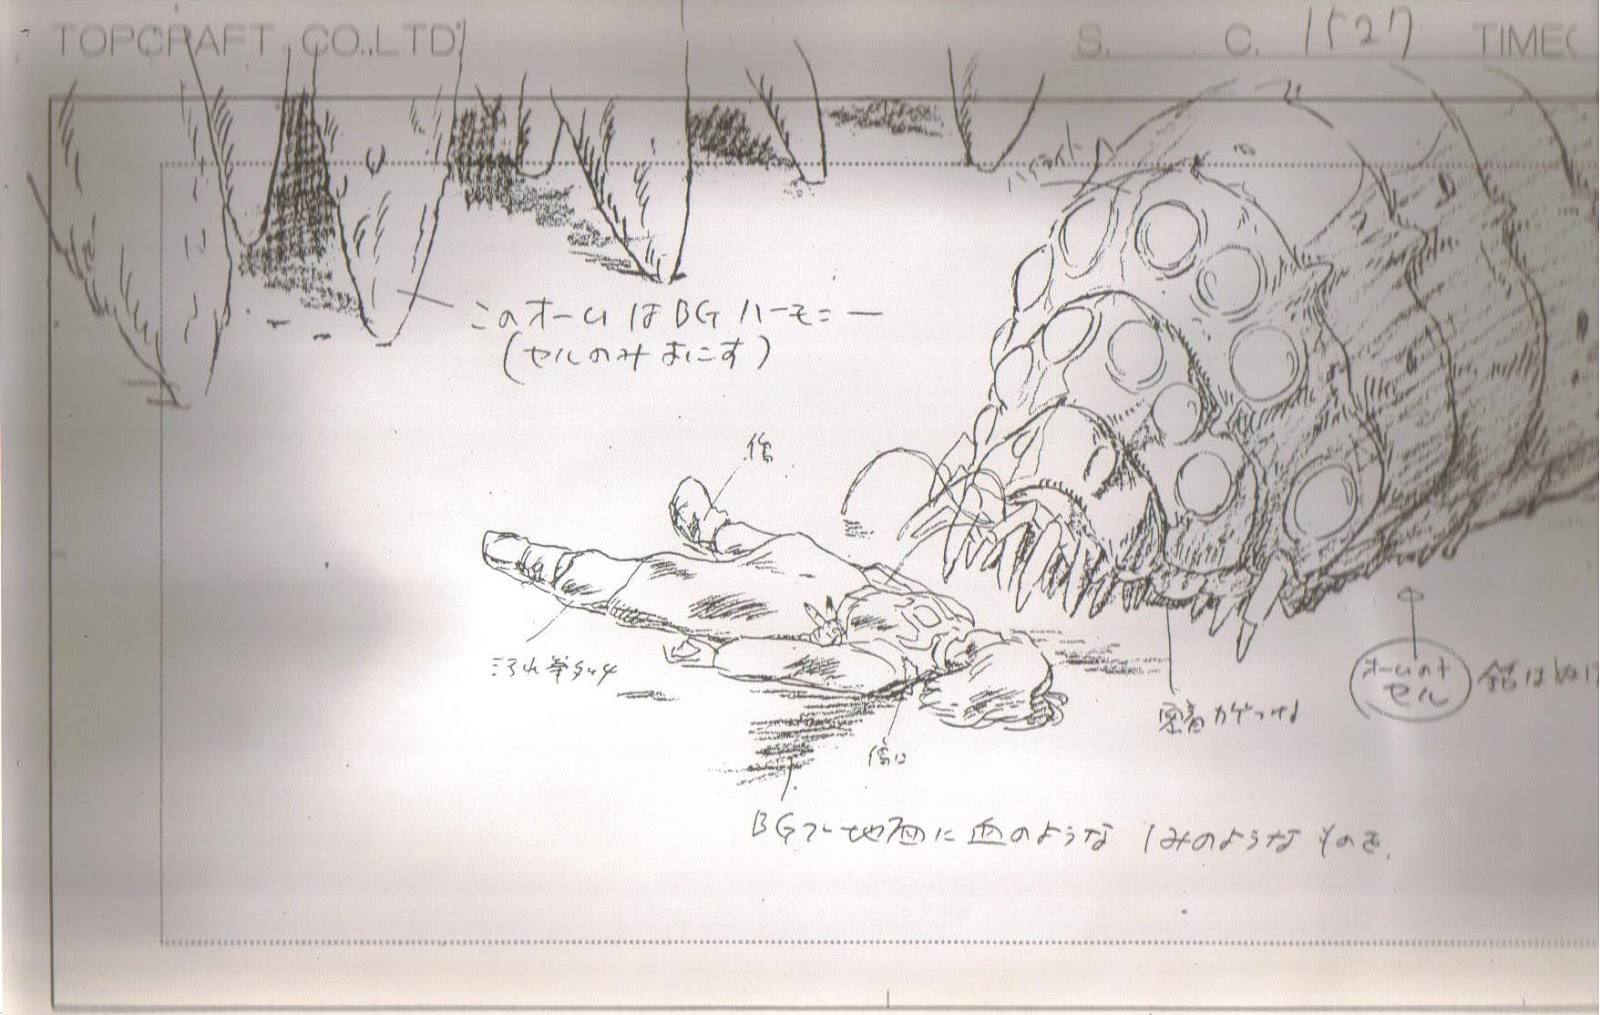 nausicaa_of_the_valley_of_the_wind_concept_art_storyboard_16.jpg